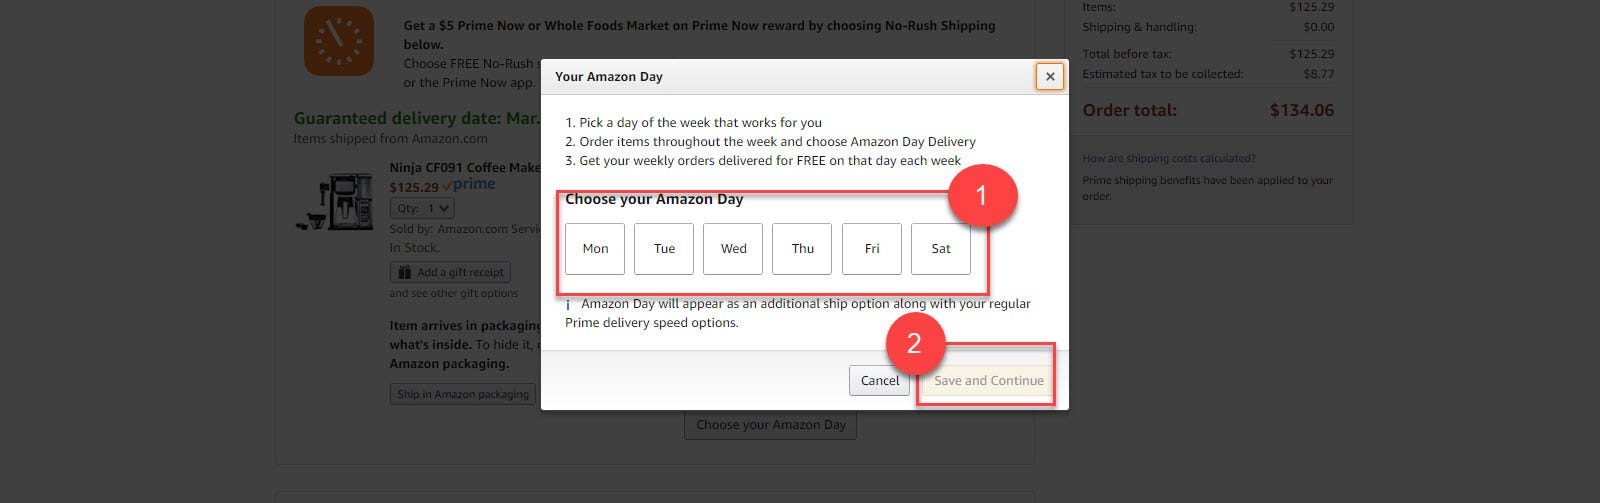 Choose Your Amazon Day Dialog